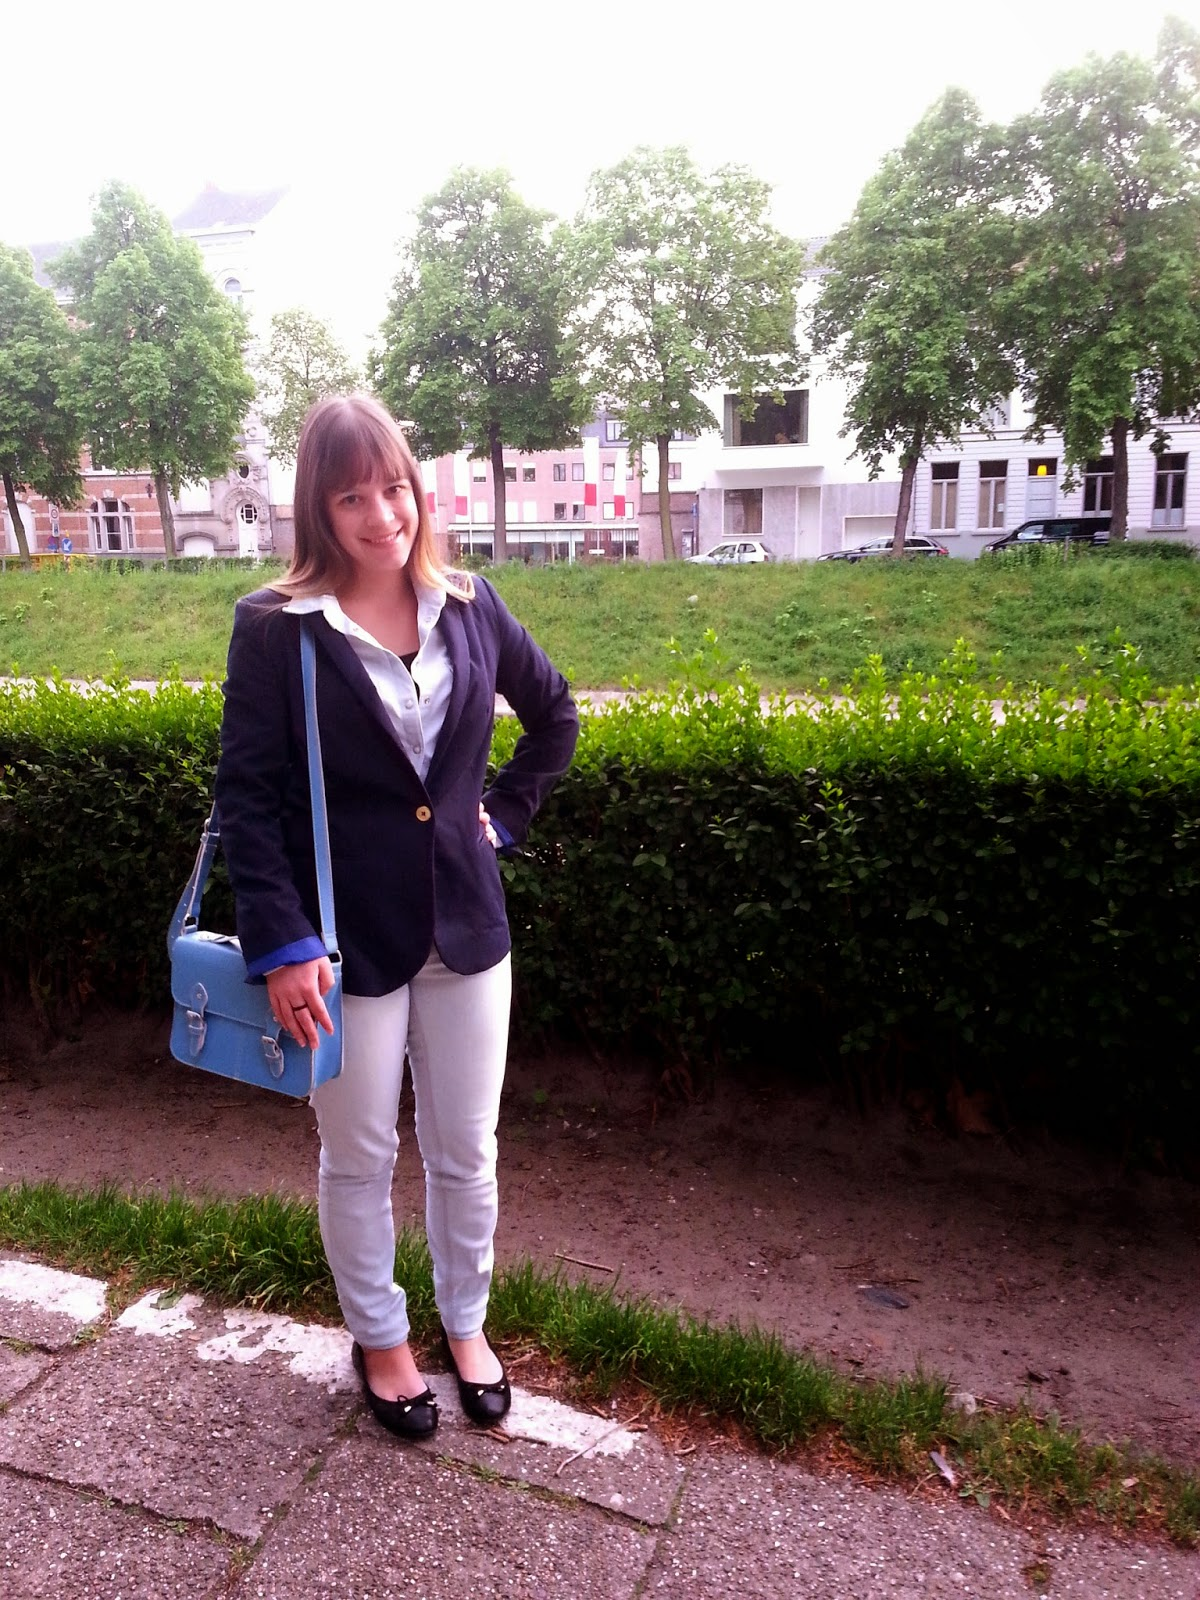 Clothes & Dreams: OOTD: That blazer, again: full outfit with new Scapa ballet flats